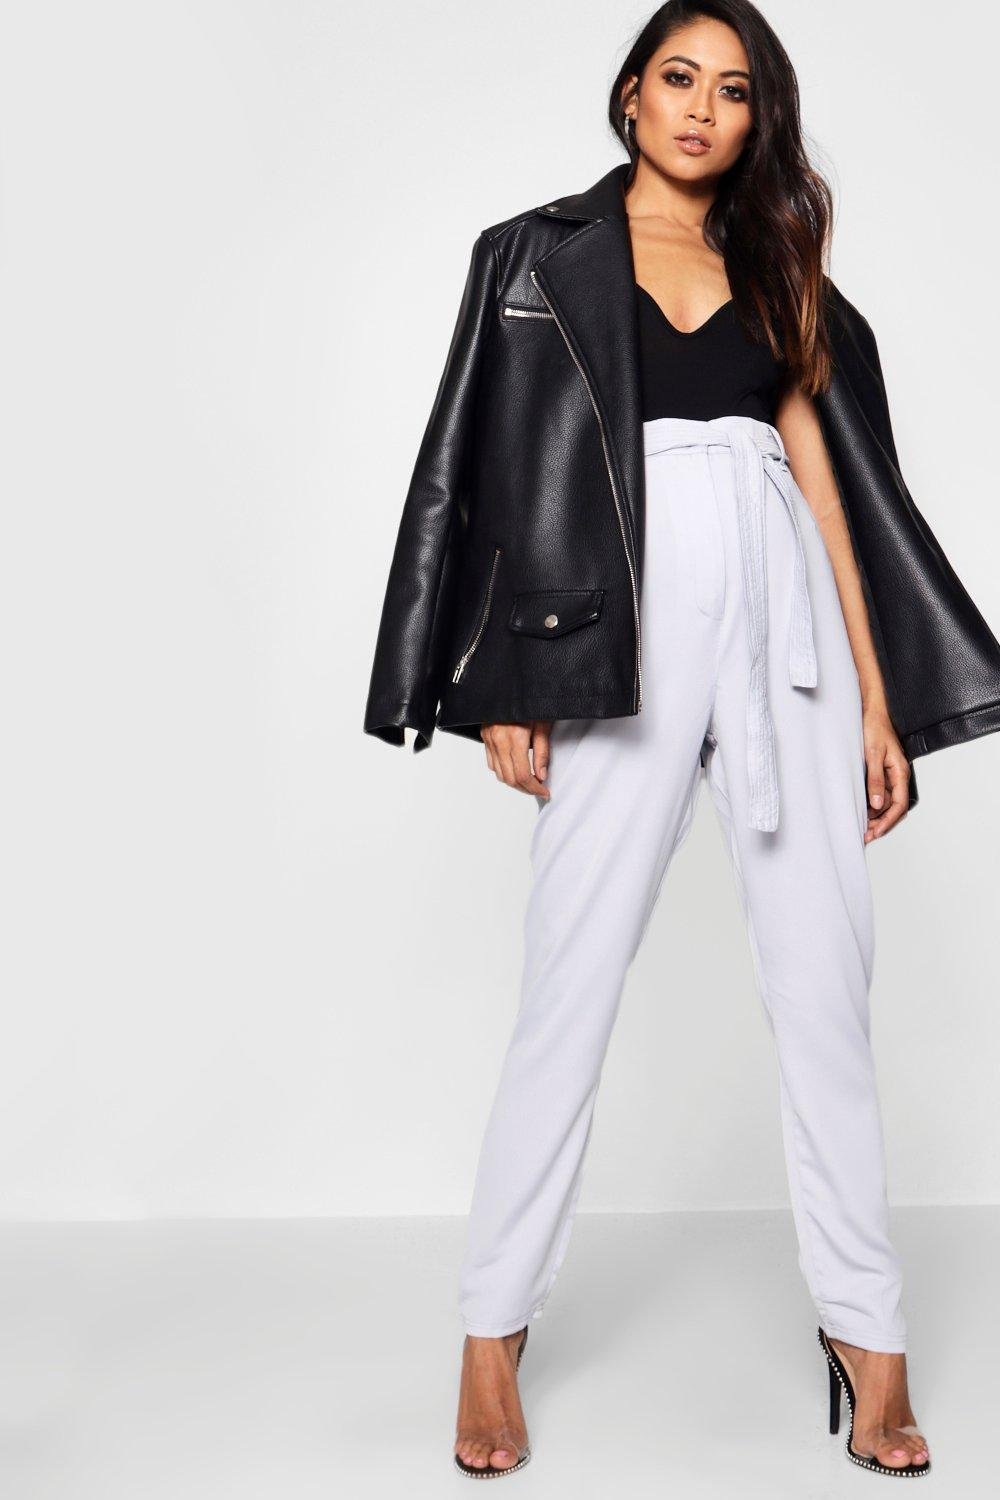 NEW-Boohoo-Womens-Maternity-Tie-Waist-Satin-Tailored-Trouser-in-Polyester